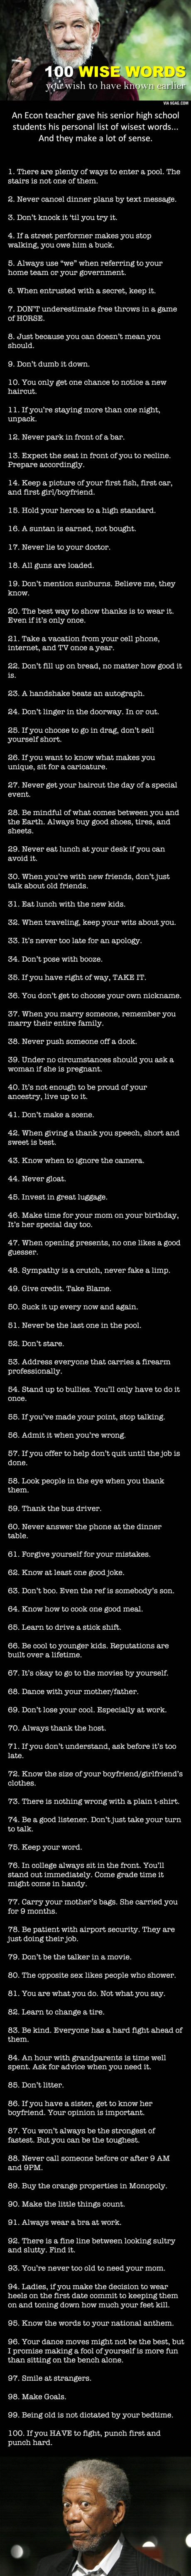 100 Wise Pieces of Advice